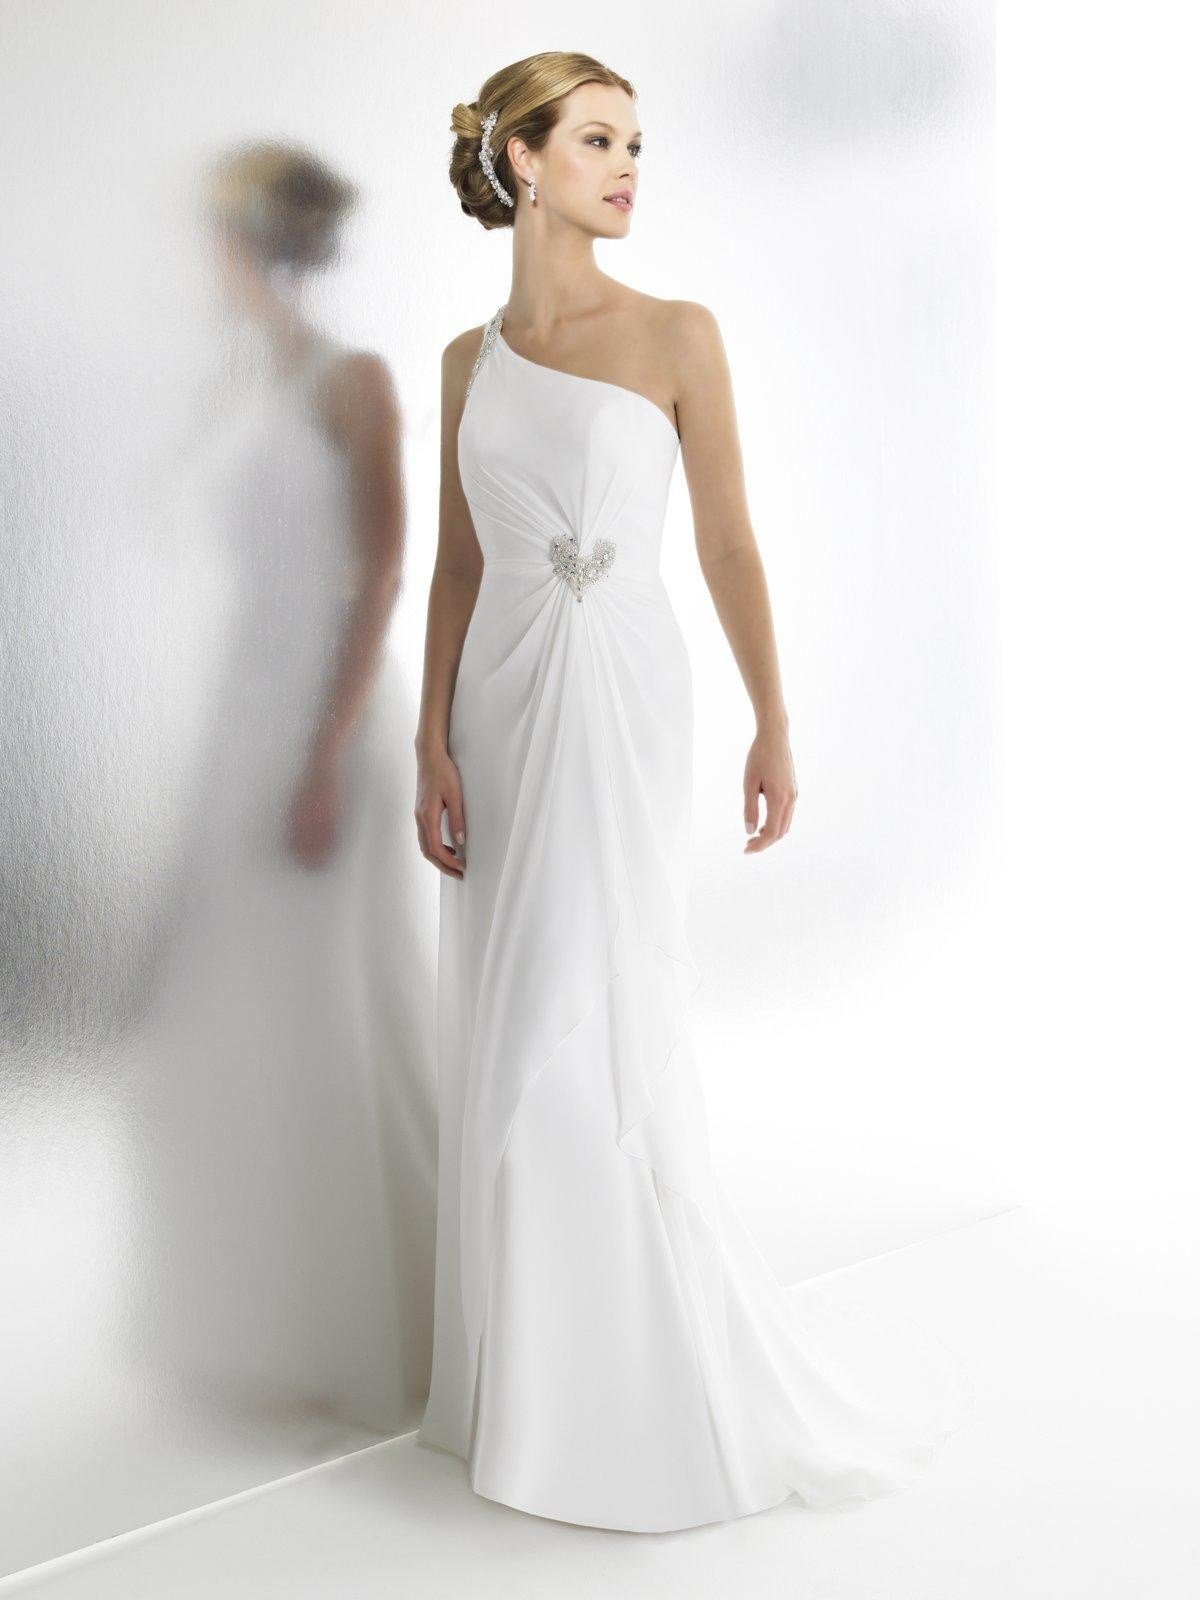 The Best Chiffon One Shoulder Wedding Dress Hairstyle For Women Man Pictures